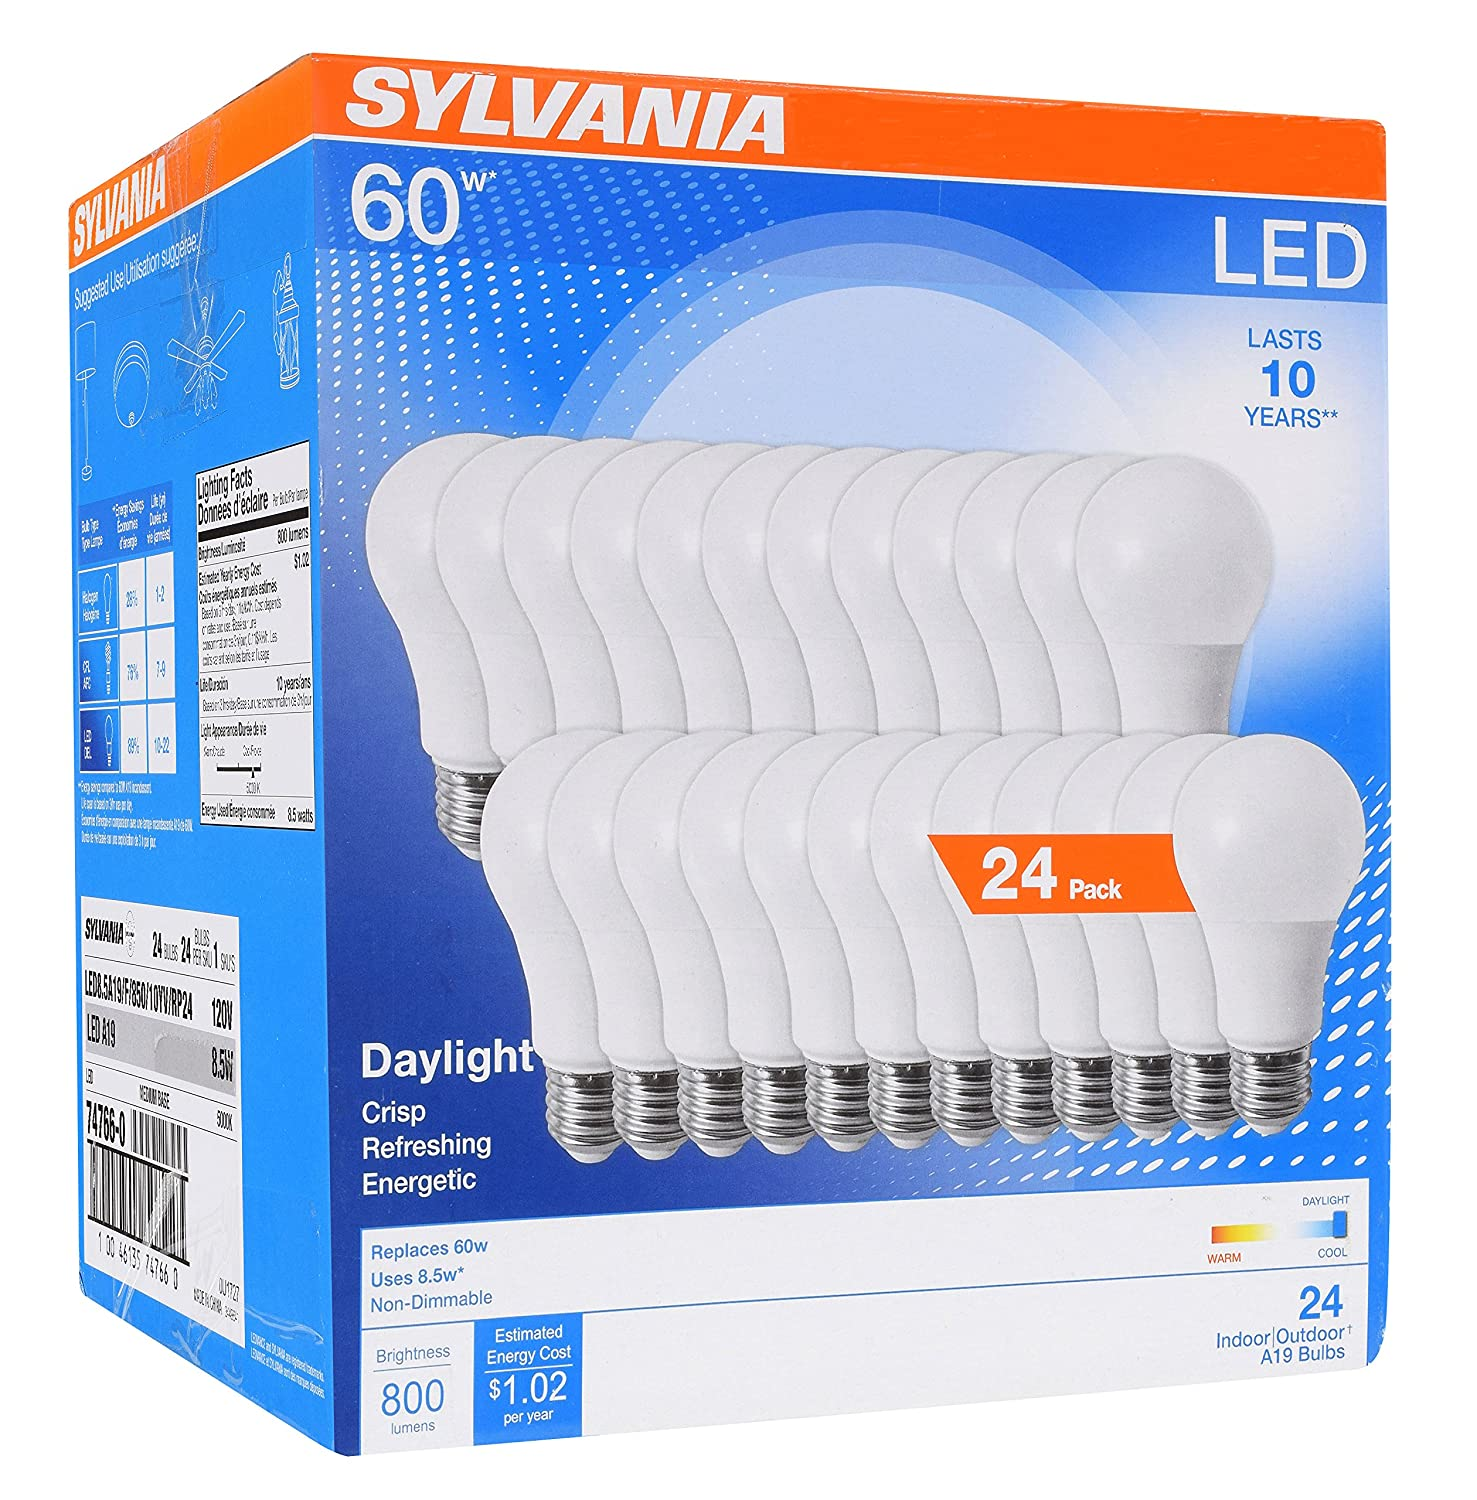 Sylvania Home Lighting 74766 Sylvania 60W Equivalent, LED Light Bulb, A19 Lamp, Efficient 8.5W, Bright White 5000K, 24 Pack Piece